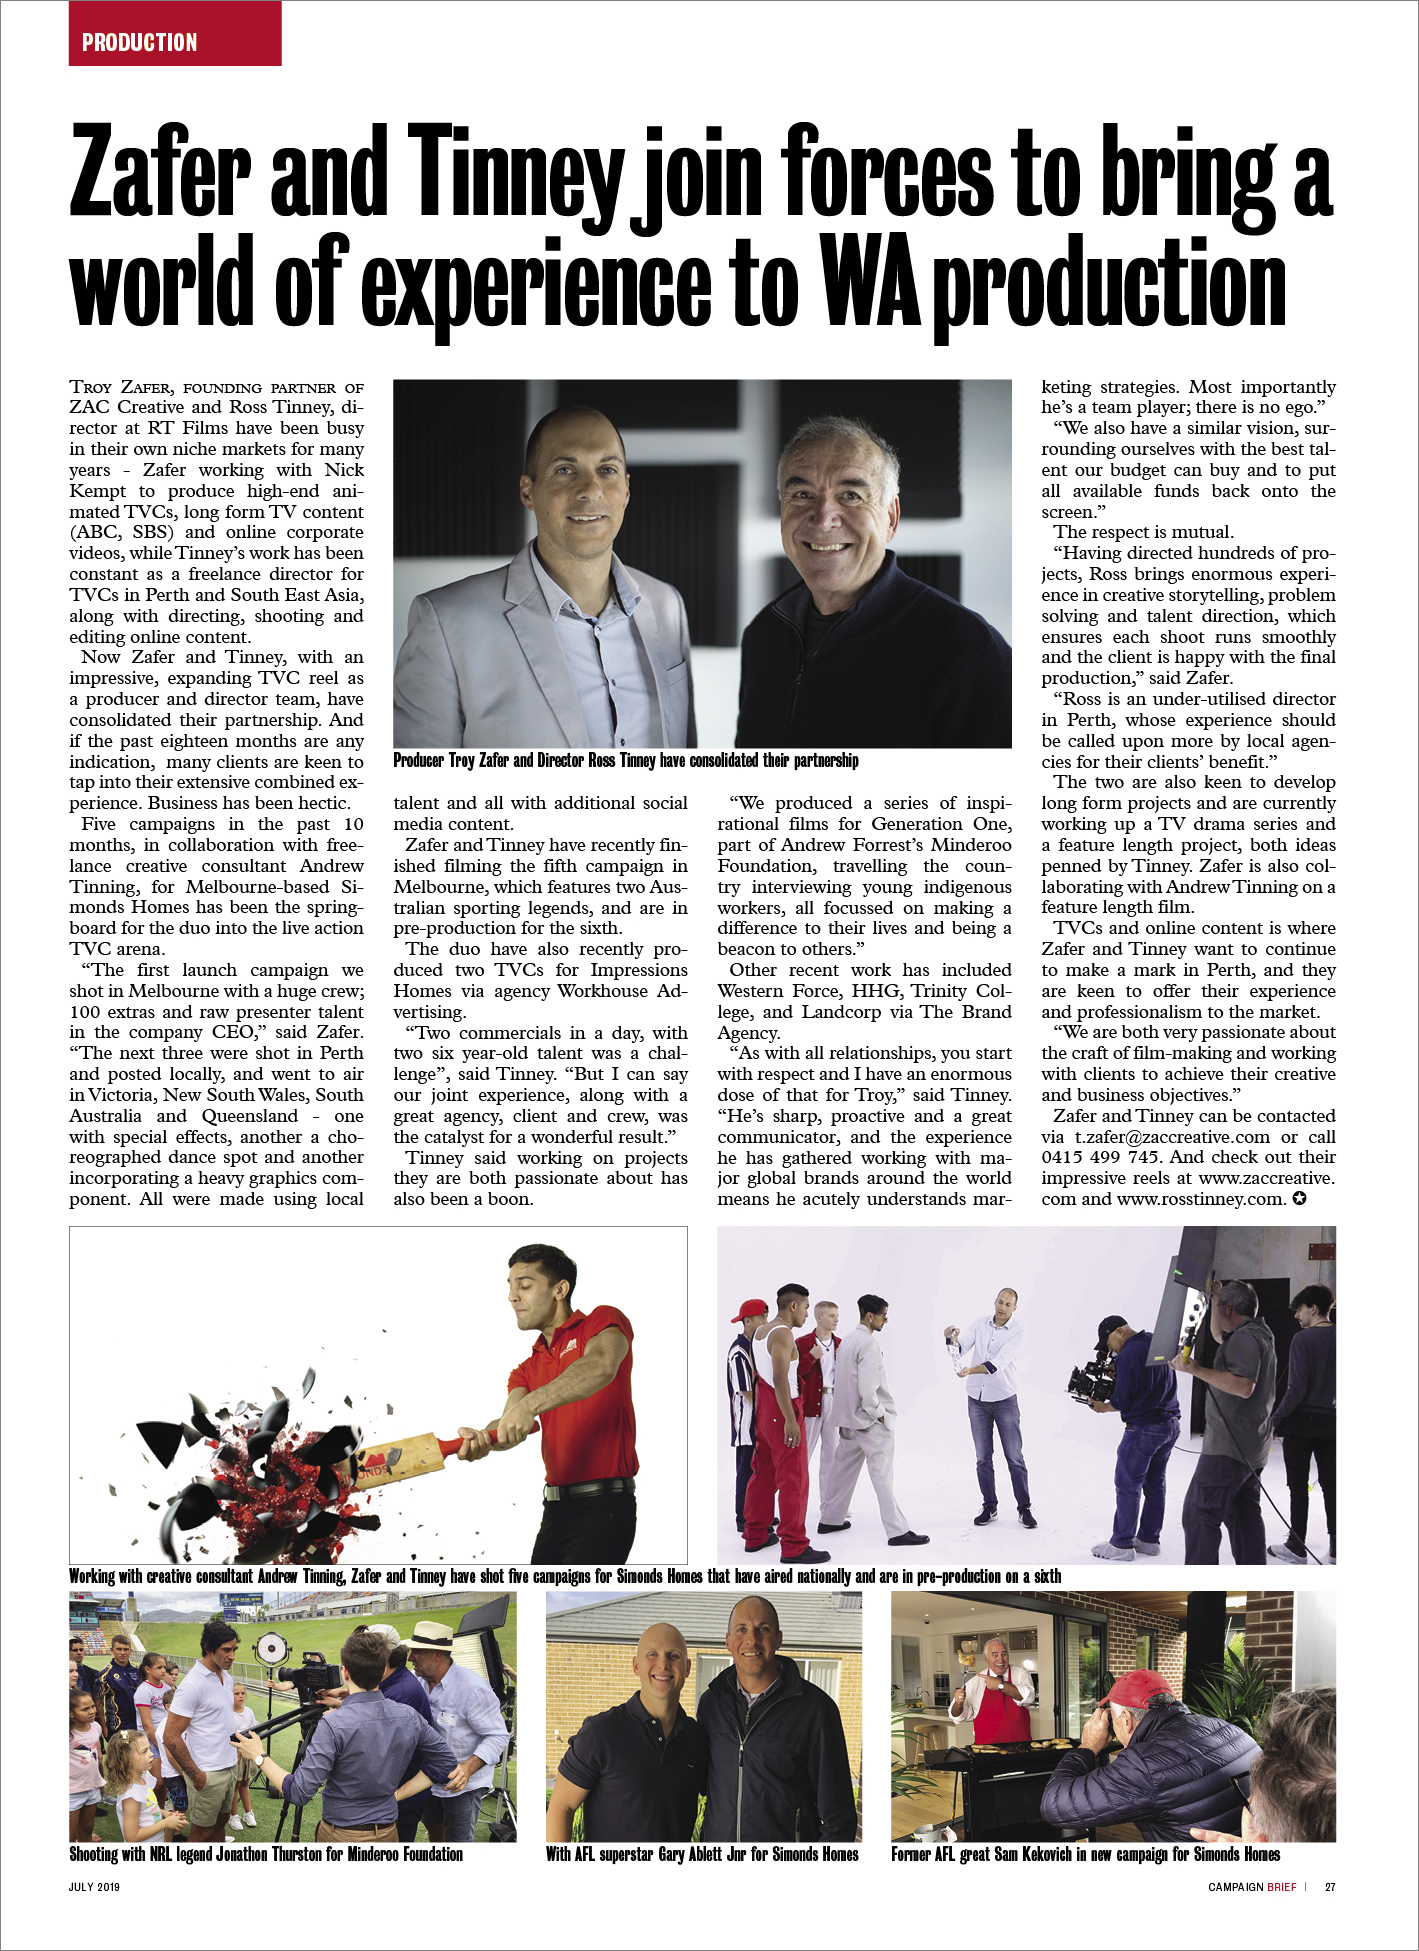 Troy Zafer and Ross Tinney join forces to bring a world of experience to WA production